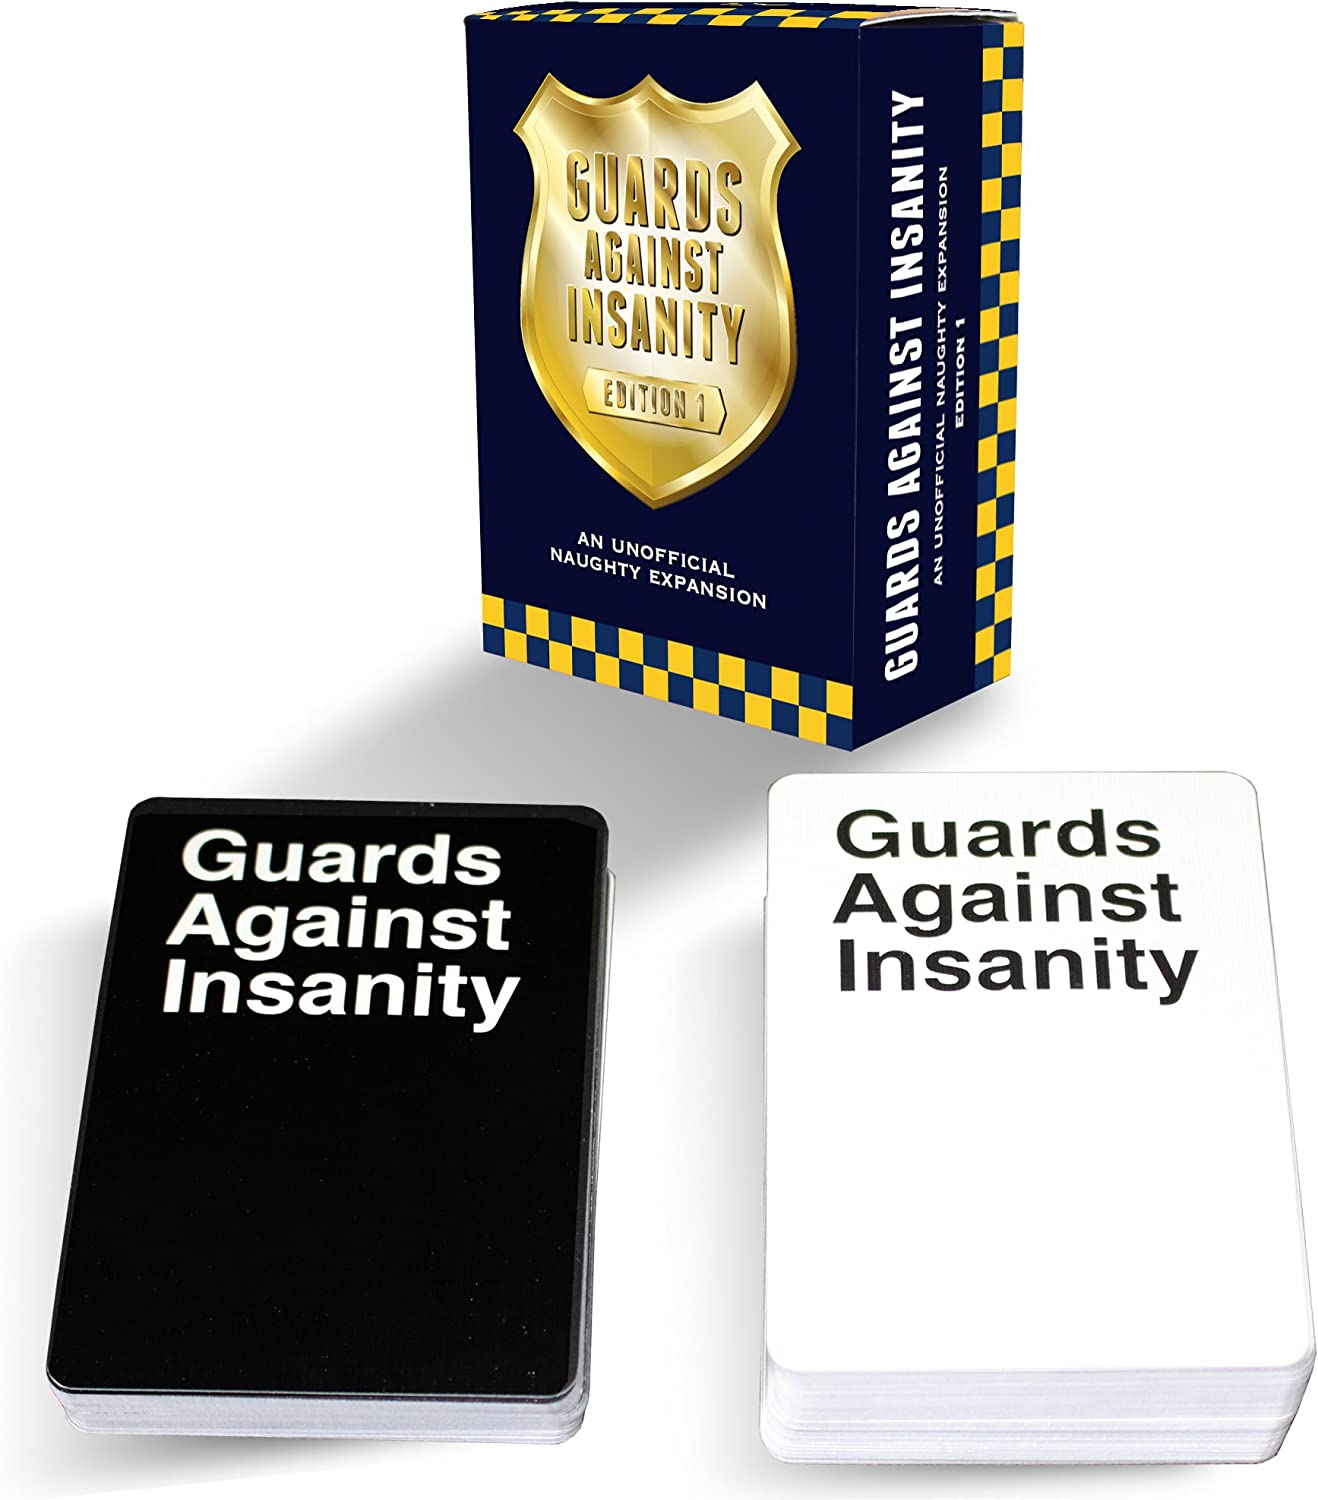 Guards Against Insanity: Edition 2 - An Unofficial Naughty Expansion Pack: Amazon.es: Juguetes y juegos